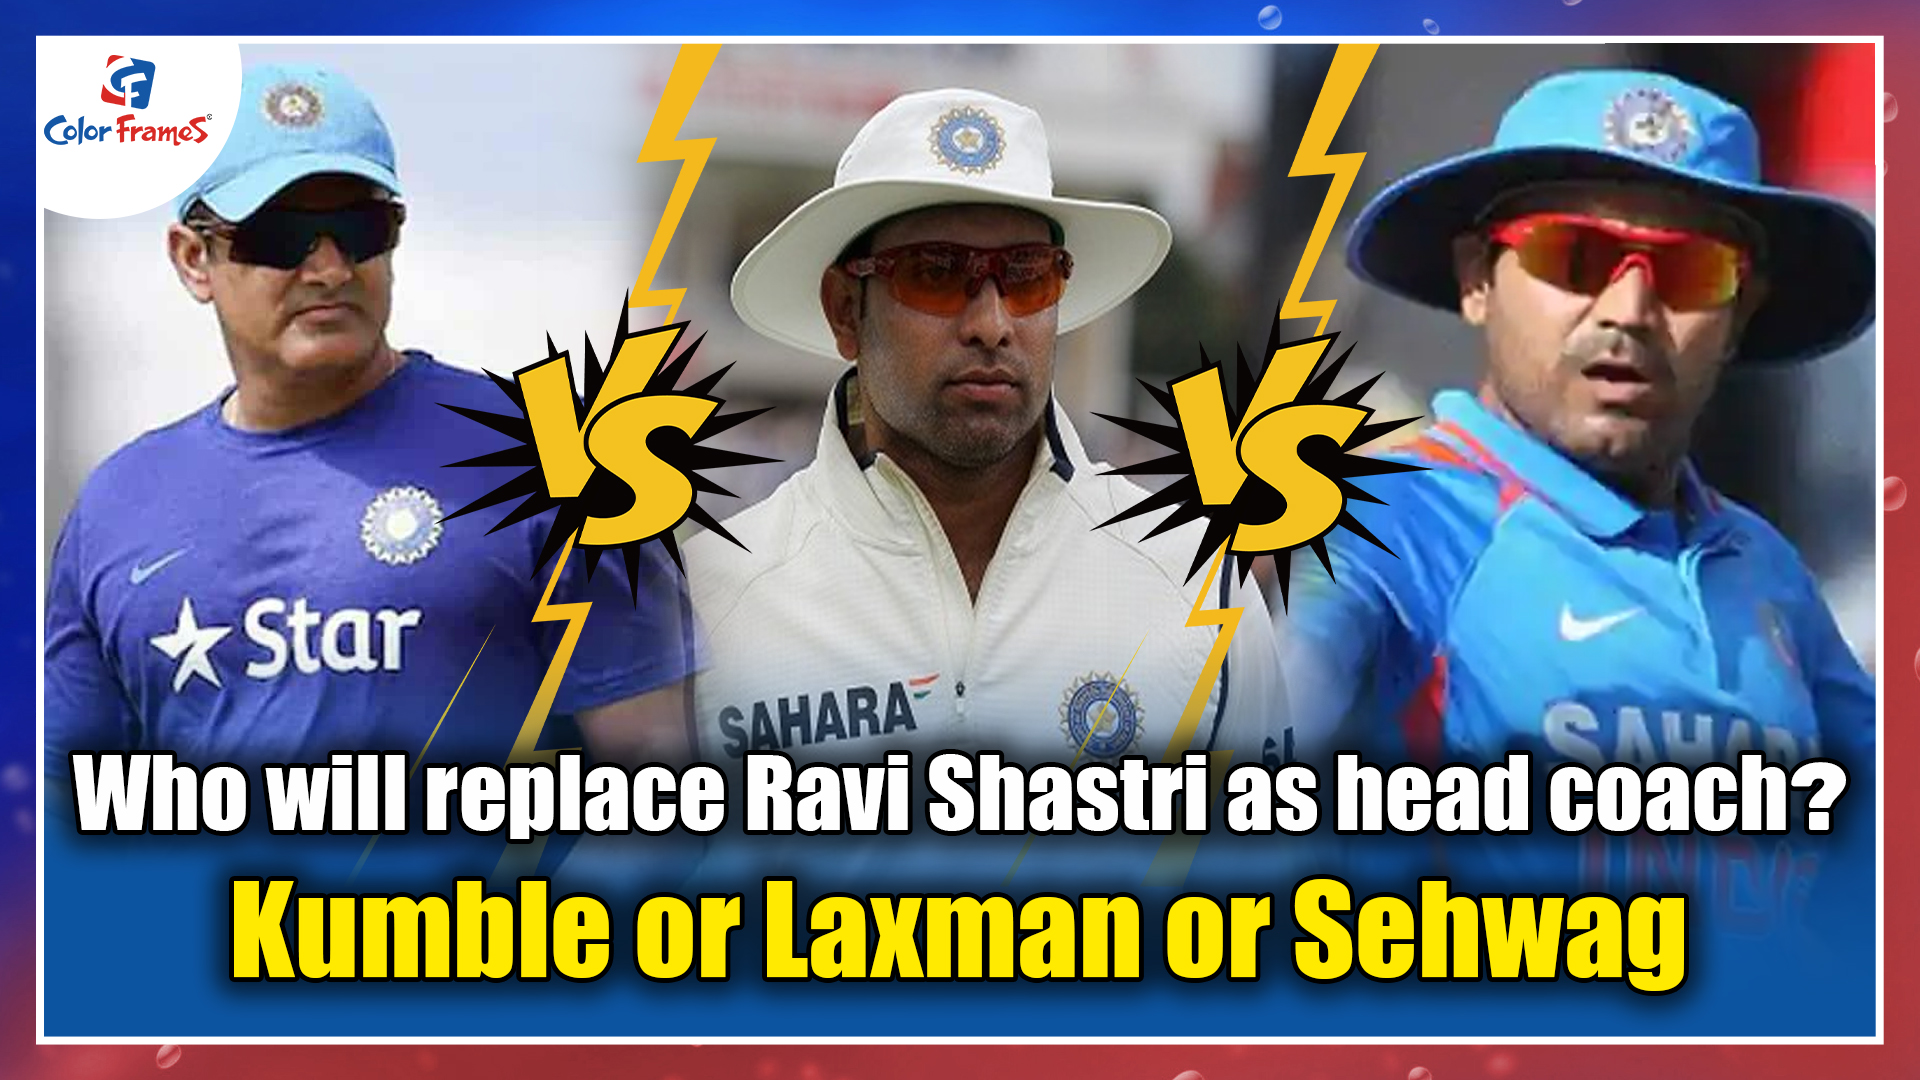 Who will replace Ravi Shastri as head coach? Kumble or Sehwag or Laxman?